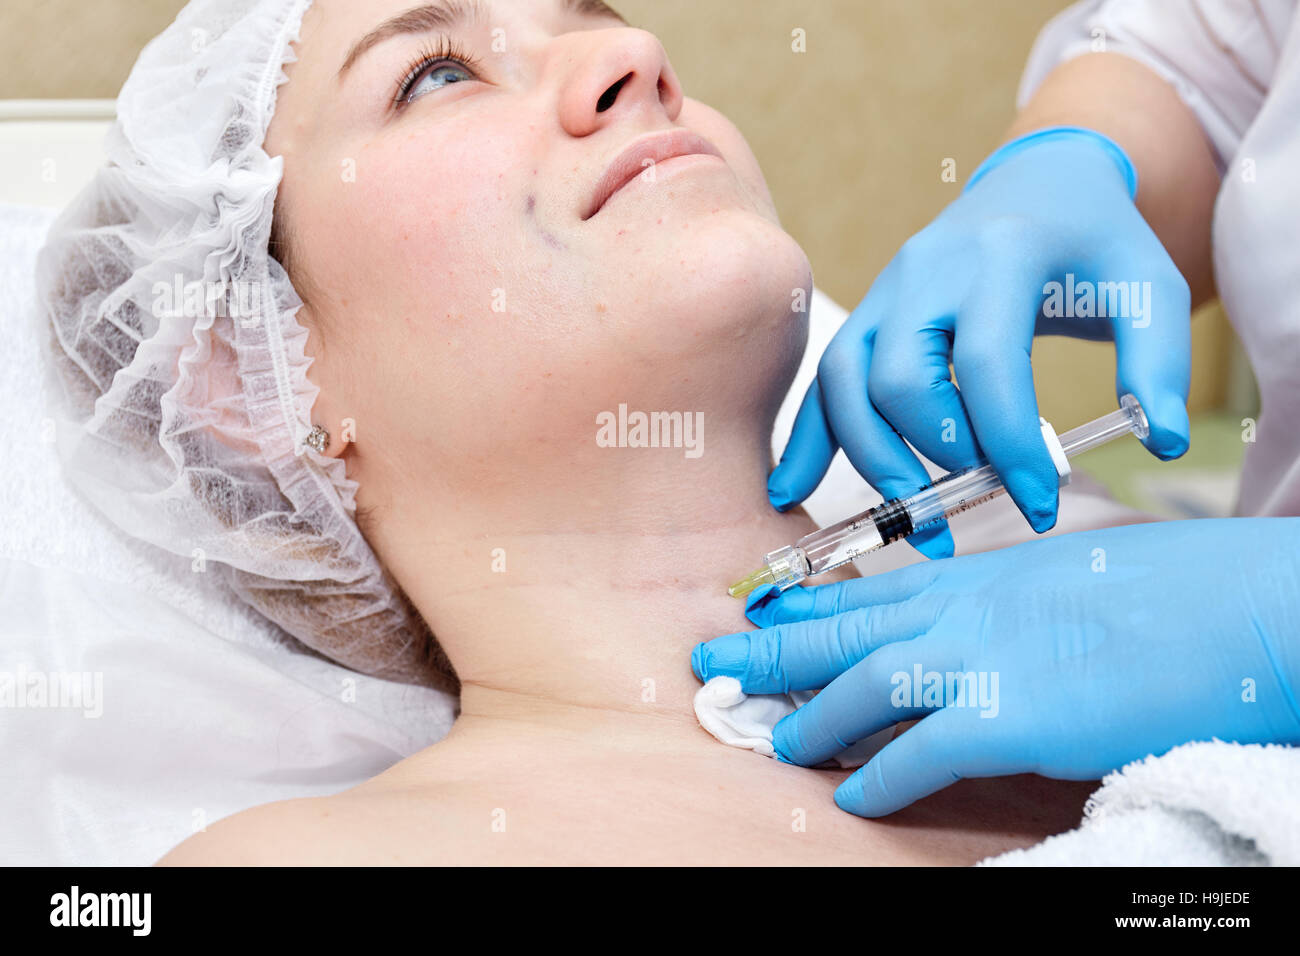 Anti-age injection therapy. Wrinkles reduction - Stock Image